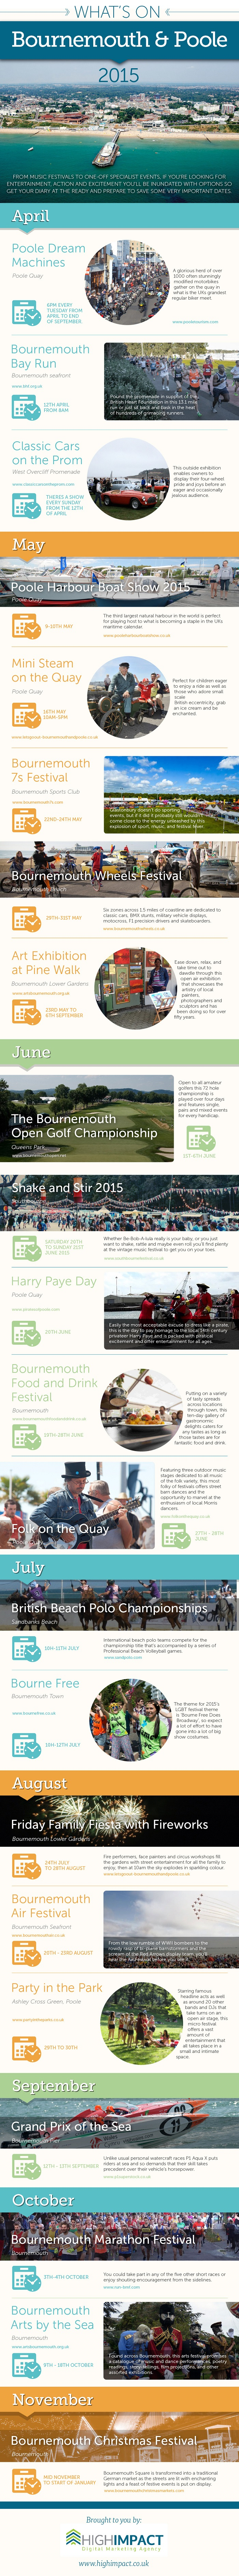 What's on in Bournemouth and Poole Infographic